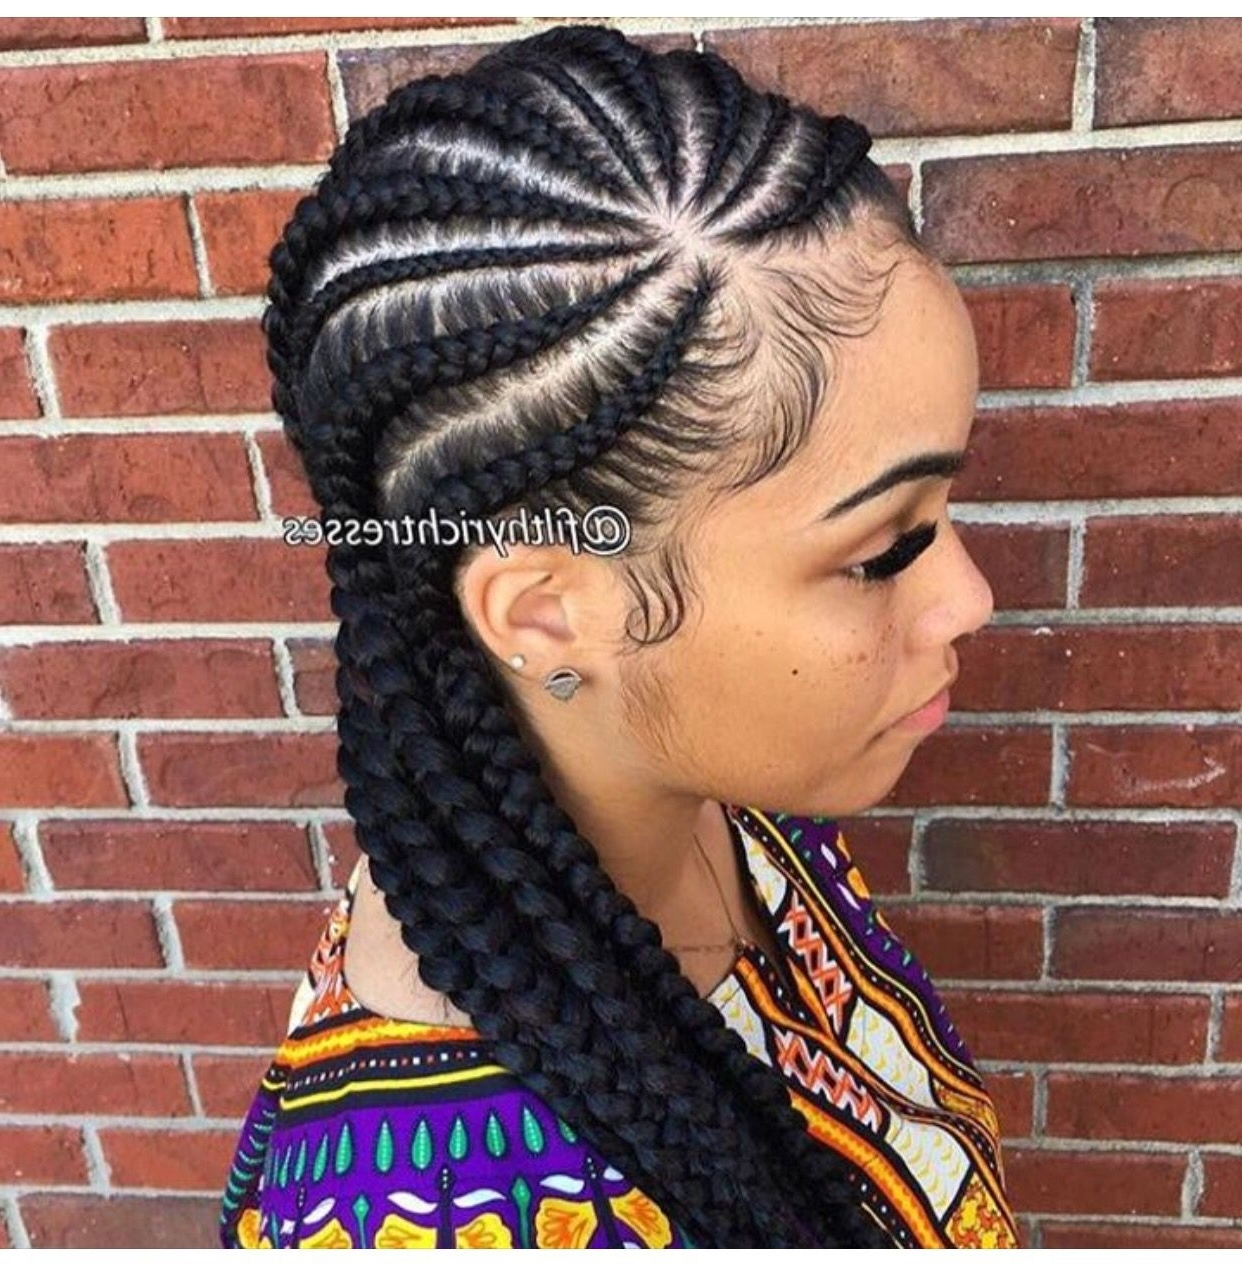 2018 Braided Hairstyles For Black Girls In Shocking Pinjanelle Bourda On Hairstyles Black Girl Image Of (View 1 of 15)